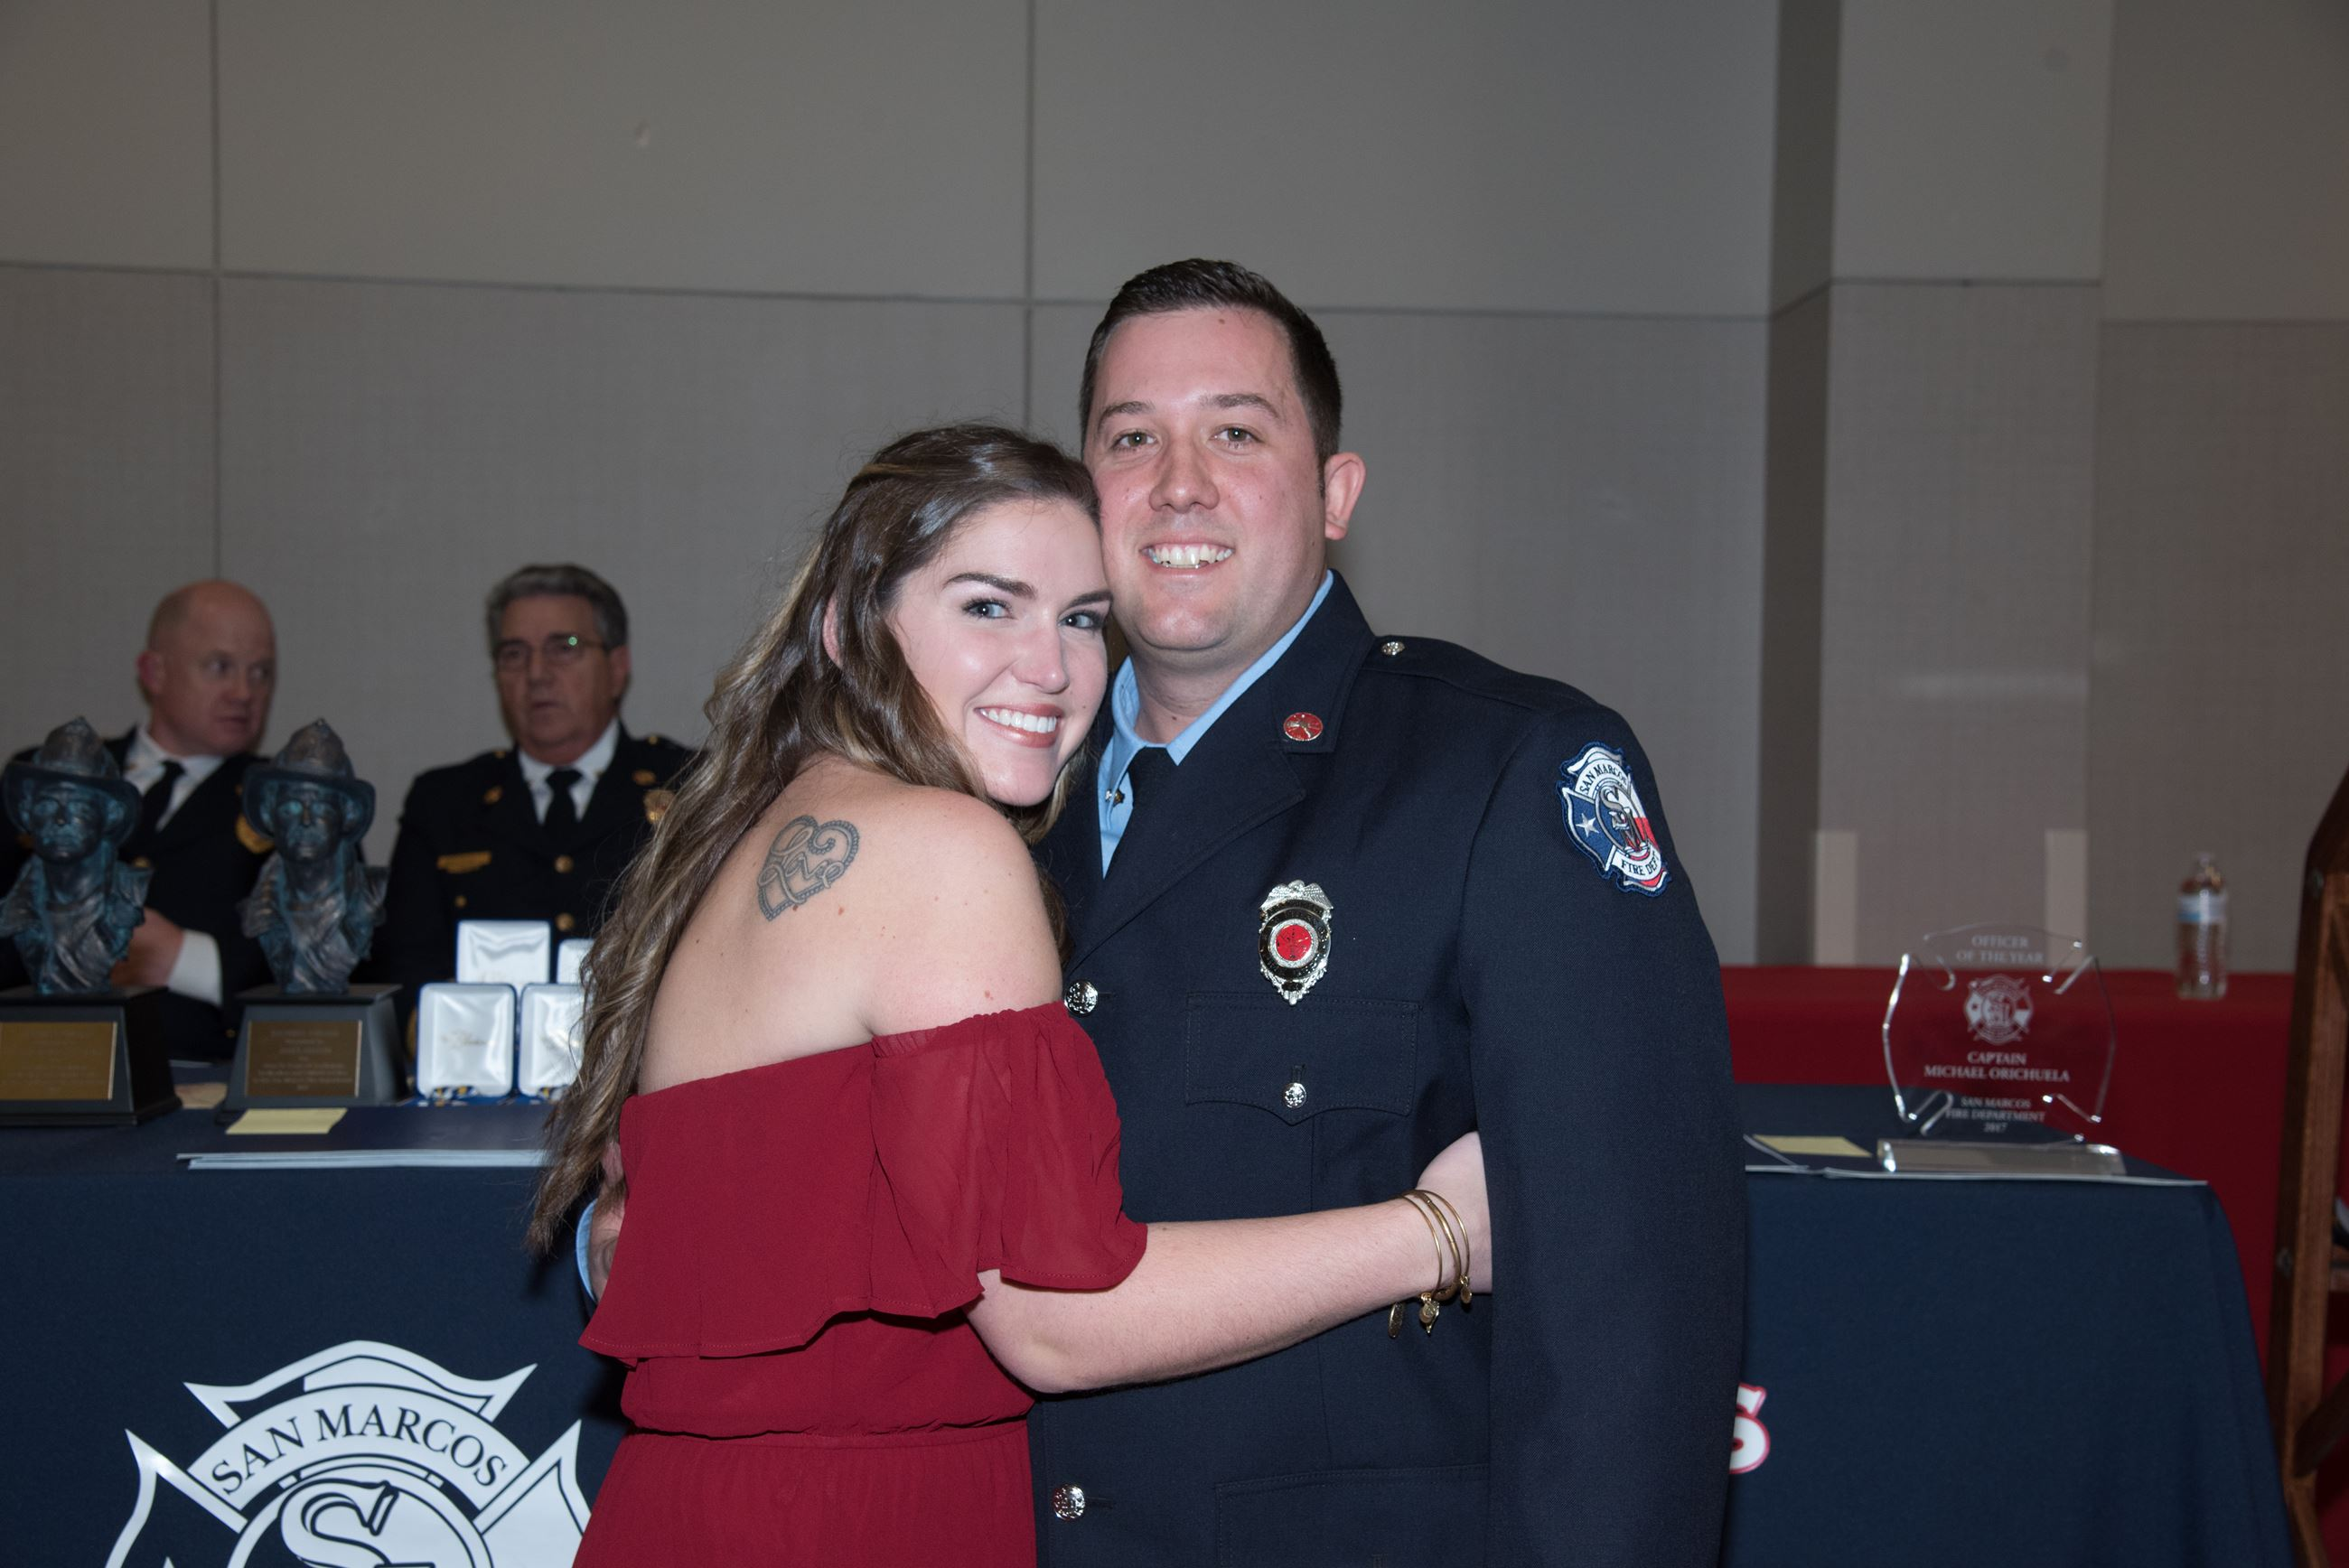 Firefighter getting pinned with his promotional badge.